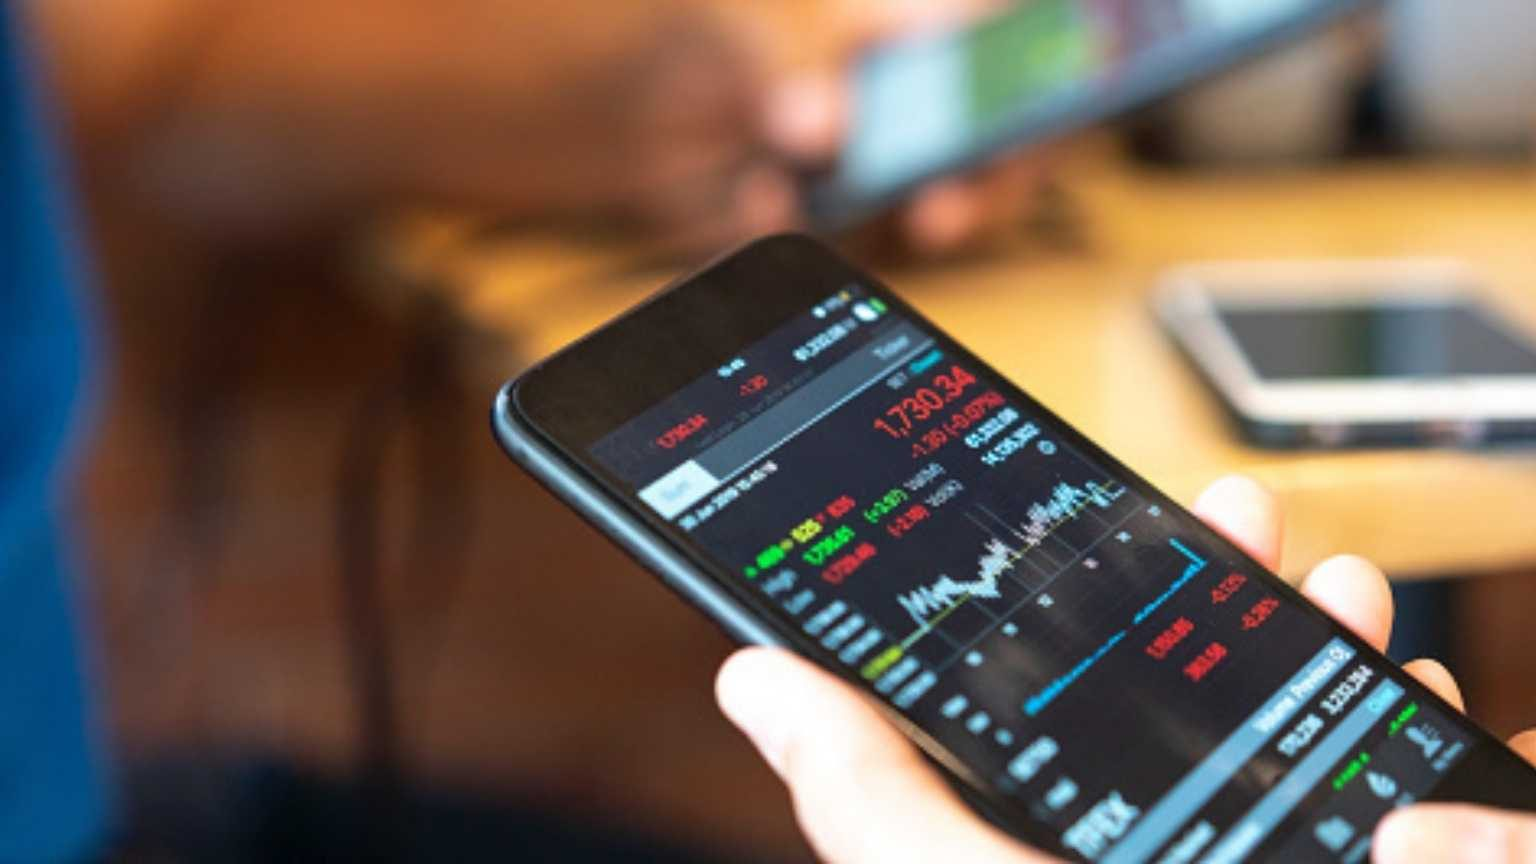 Checking share prices using phone